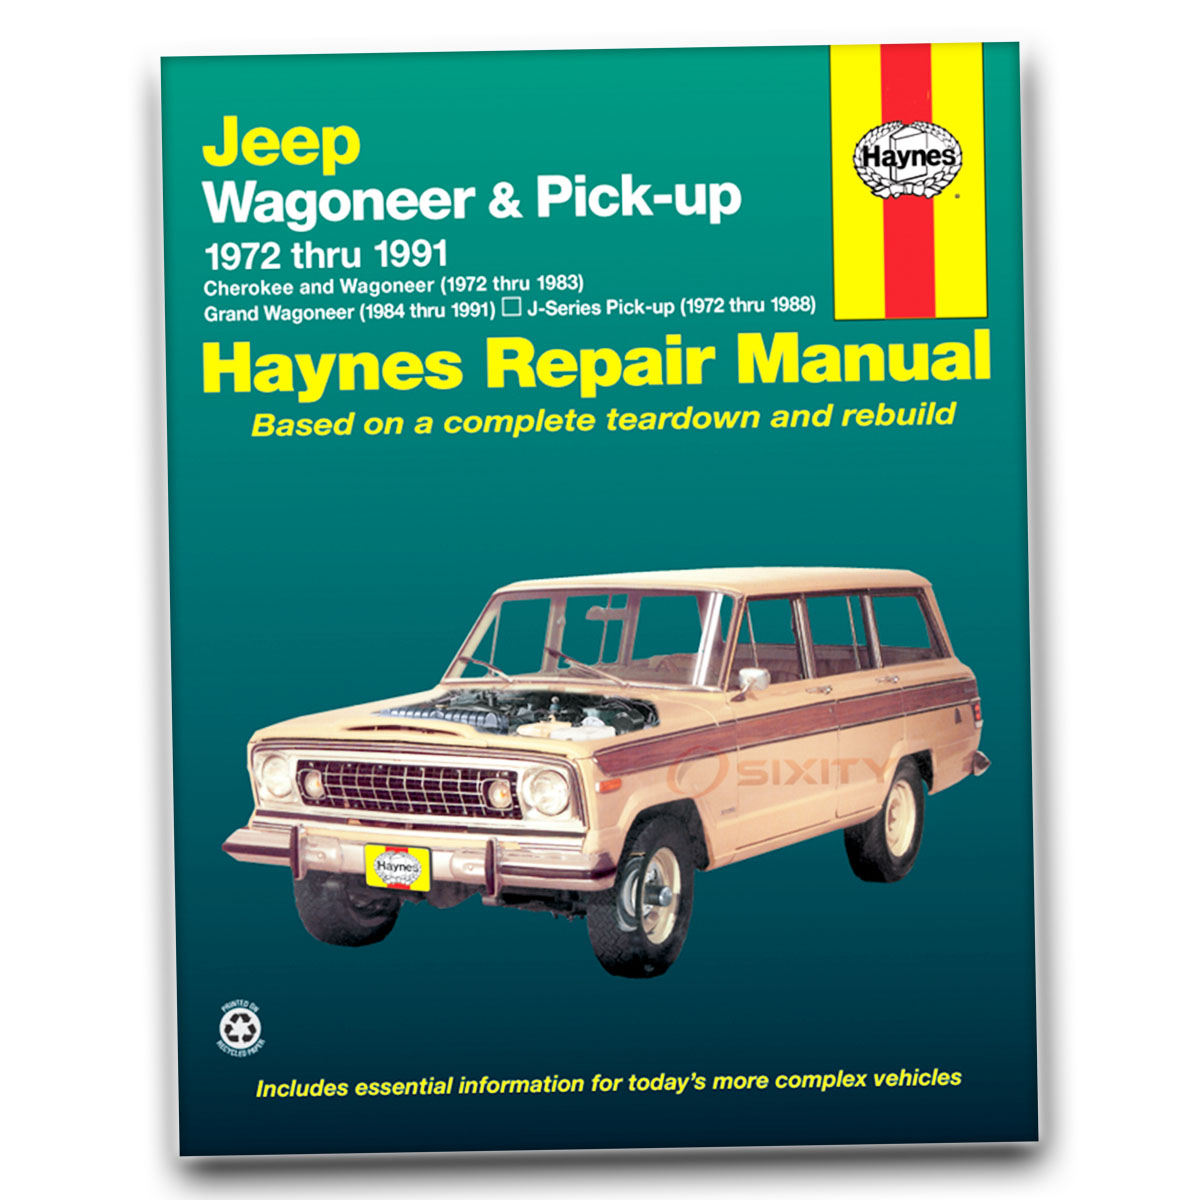 1988 Jeep Cherokee Engine Wiring Diagram Library Source Grand Wagoneer Haynes Repair Manual Base Limited Shop